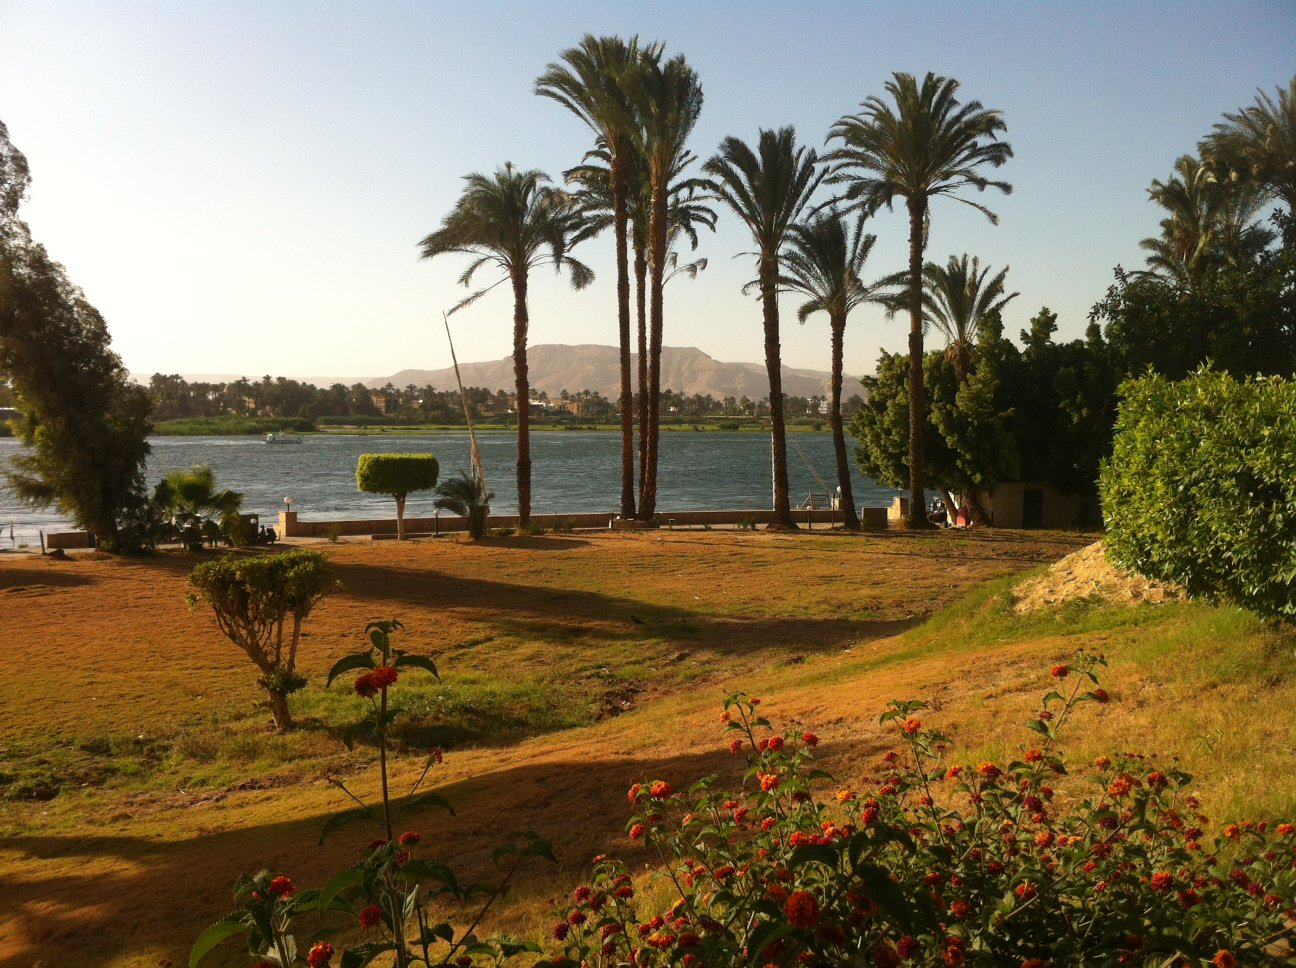 Another shot of the Nile River in Egypt. Despite difficulties in getting around, the journey here is well worth the effort. Photo © 2015 Aaron Saunders